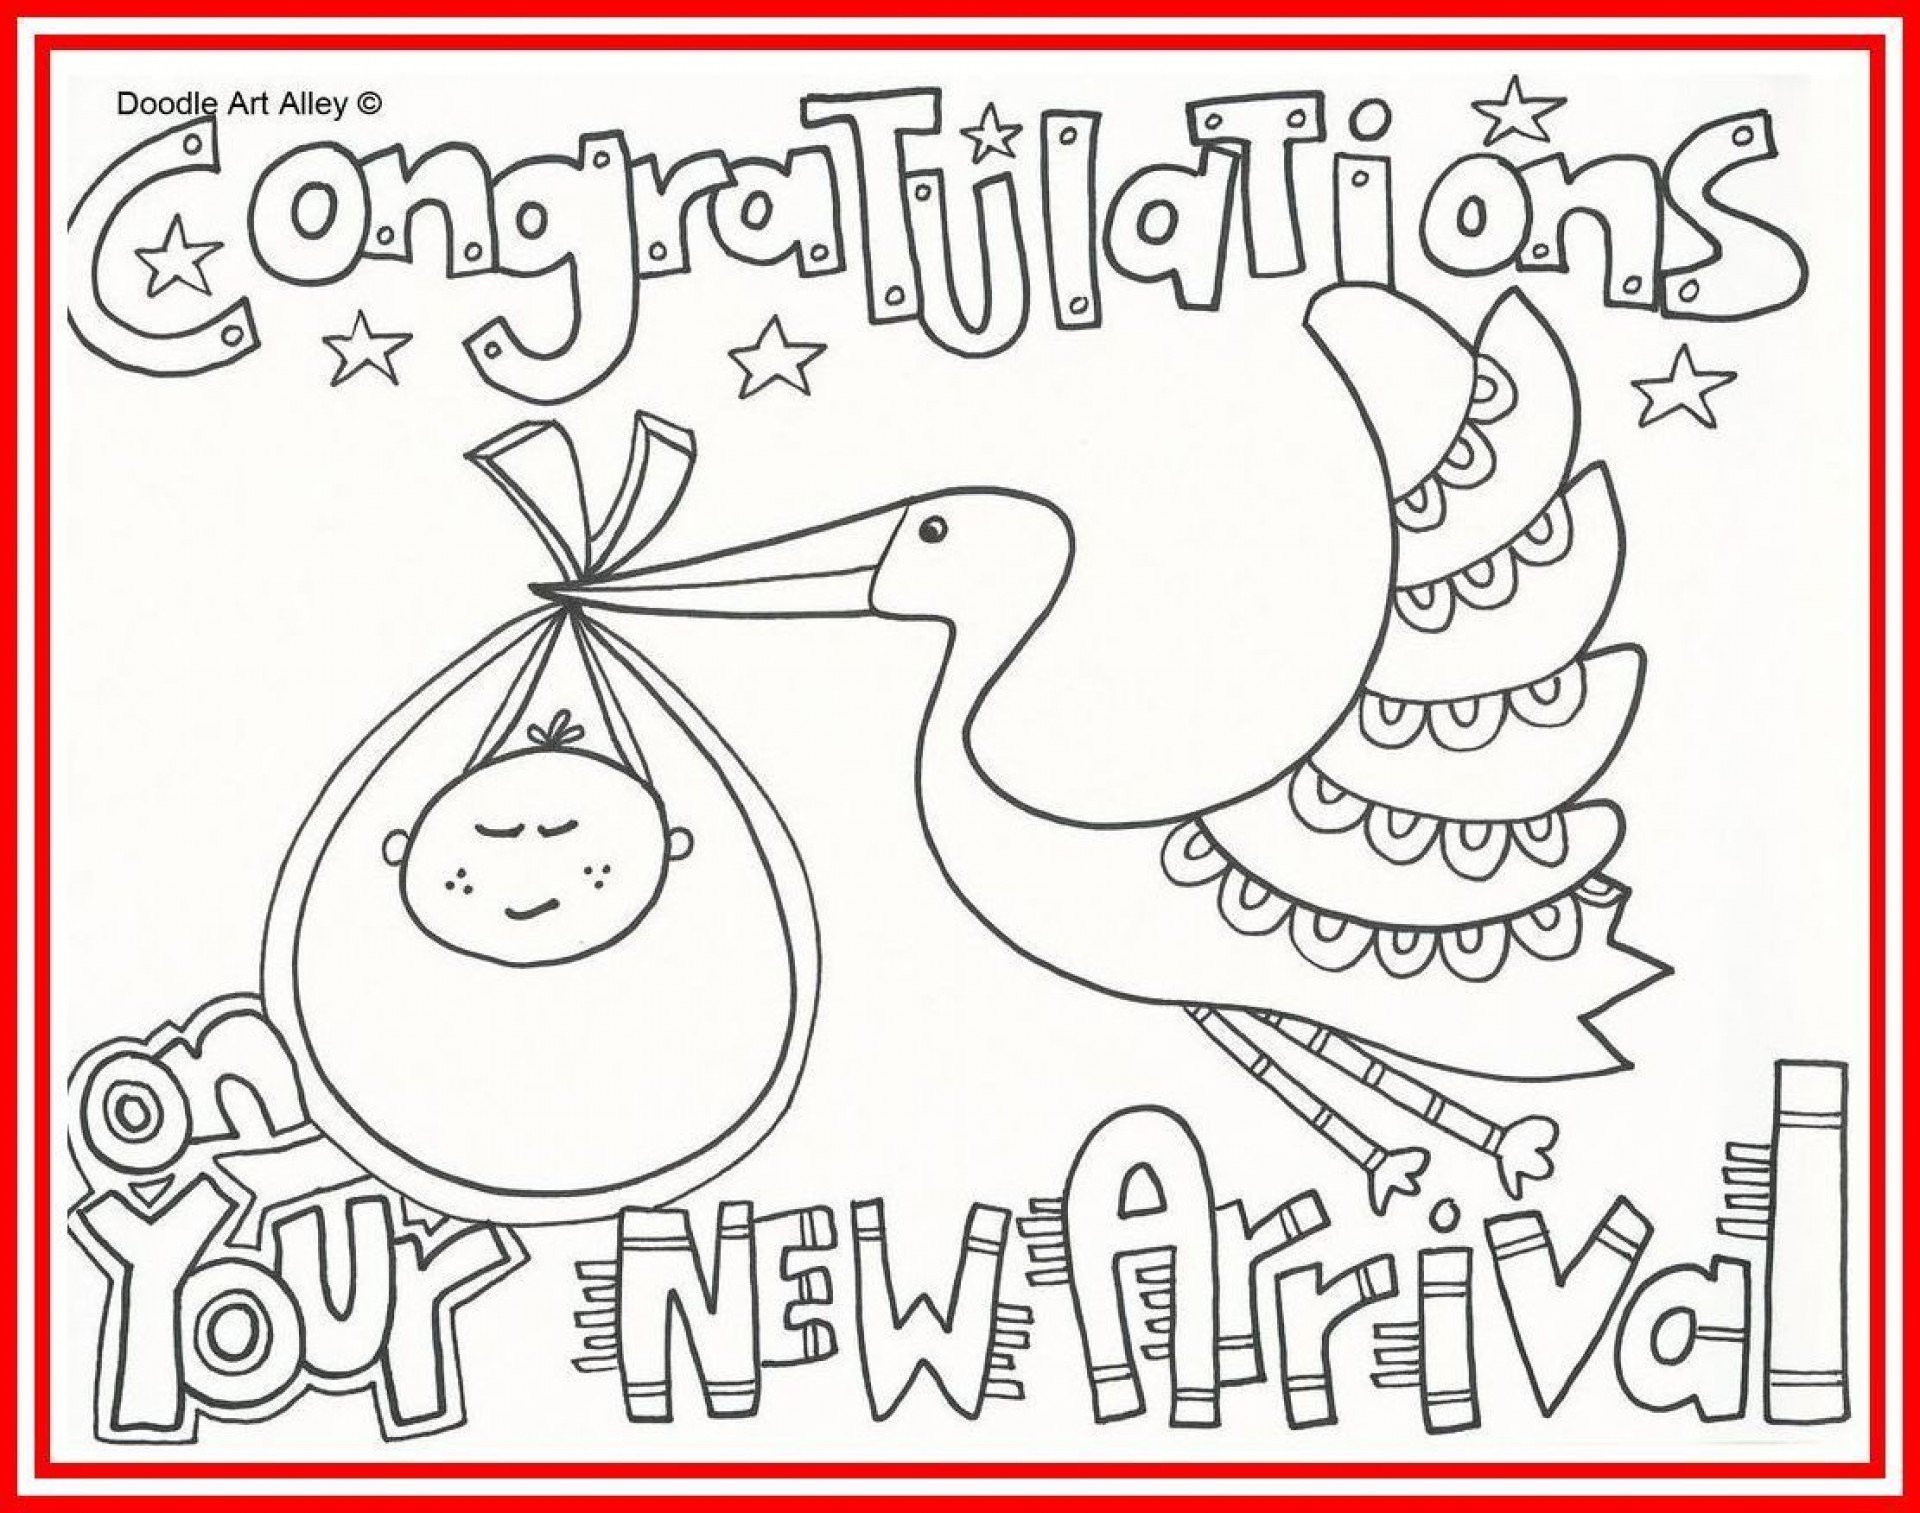 005 Unbelievable Baby Shower Card Printable Black And White Idea 1920